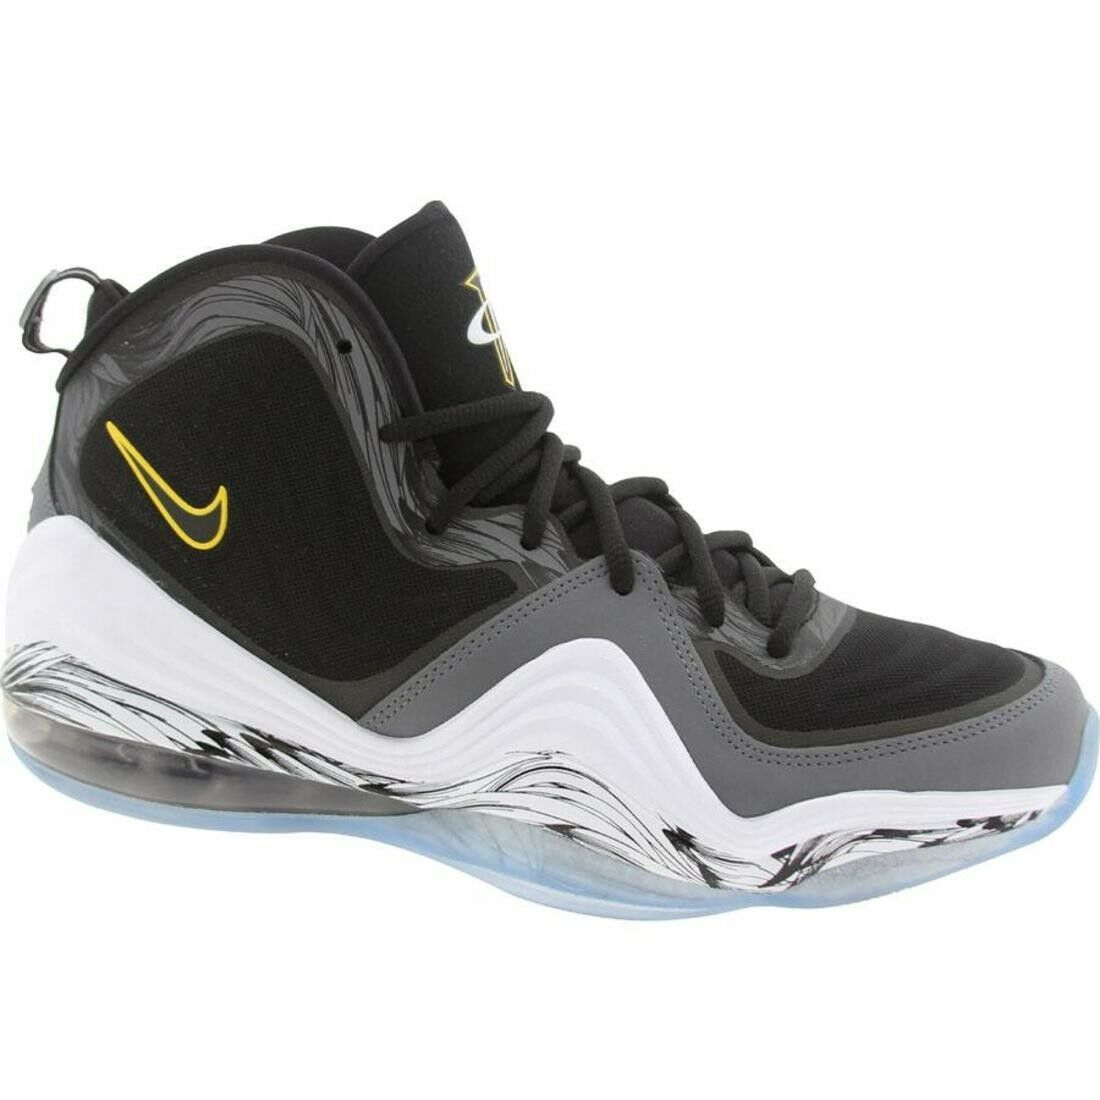 537331-001 Nike Men Air Penny V Price reduction Cheap and beautiful fashion